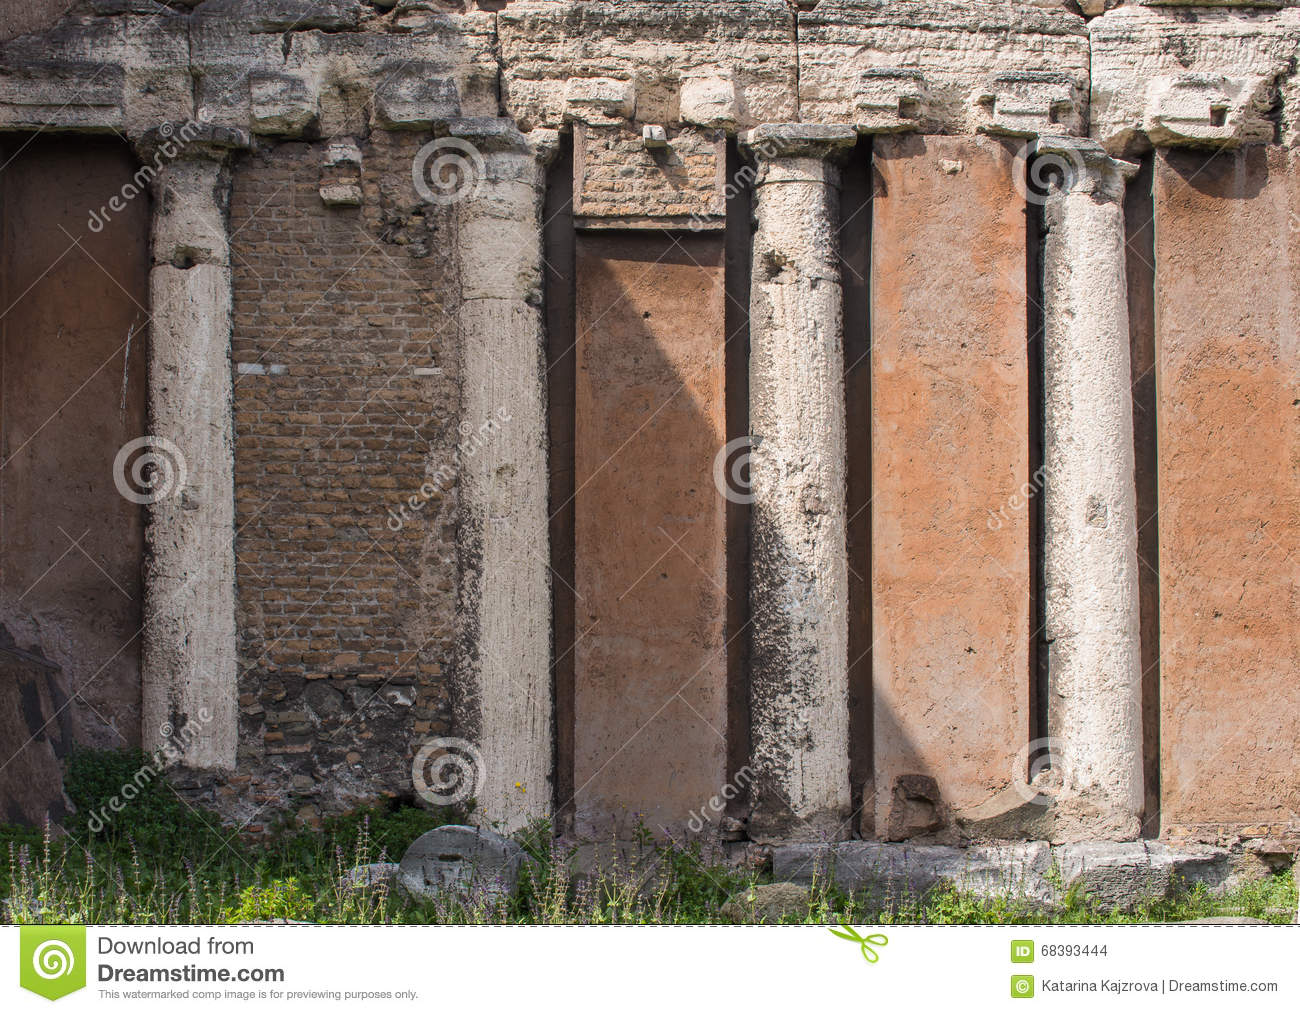 Roman Architecture Columns roman architecture, columns and facade stock photo - image: 68393444